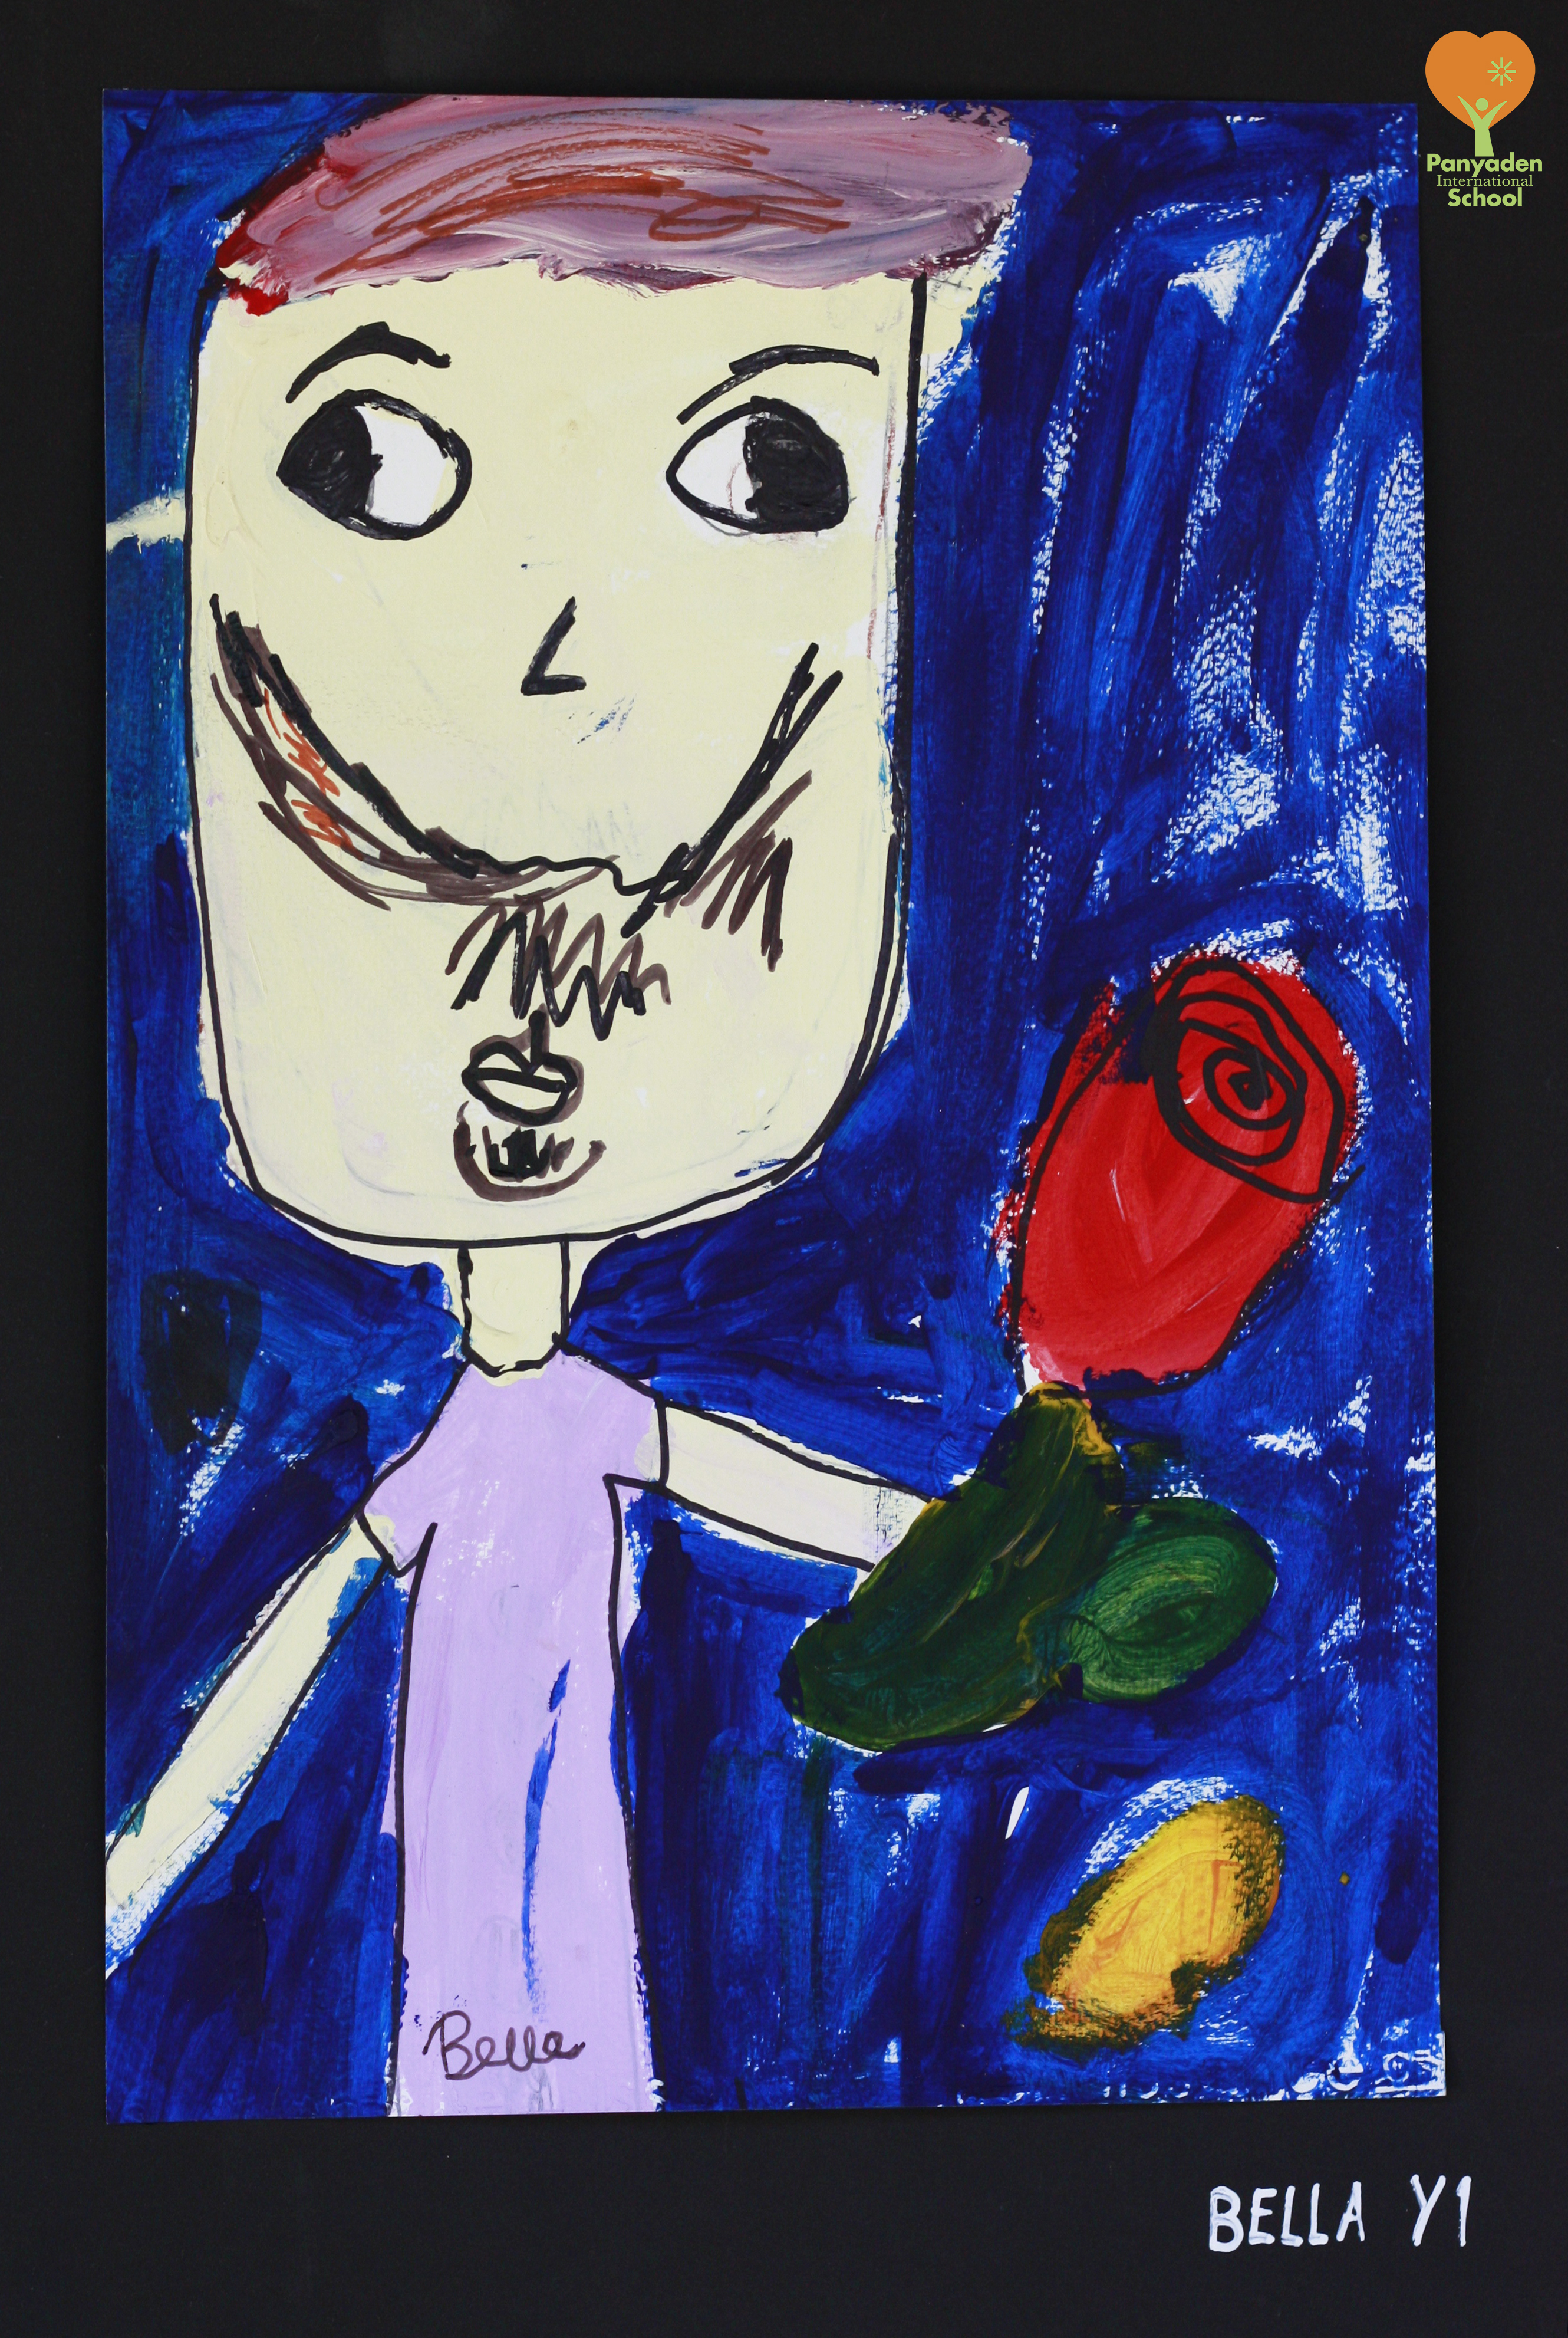 dads-drawing-bella-y1 Portrait of her dad by Panyaden International School student, Bella from year 1